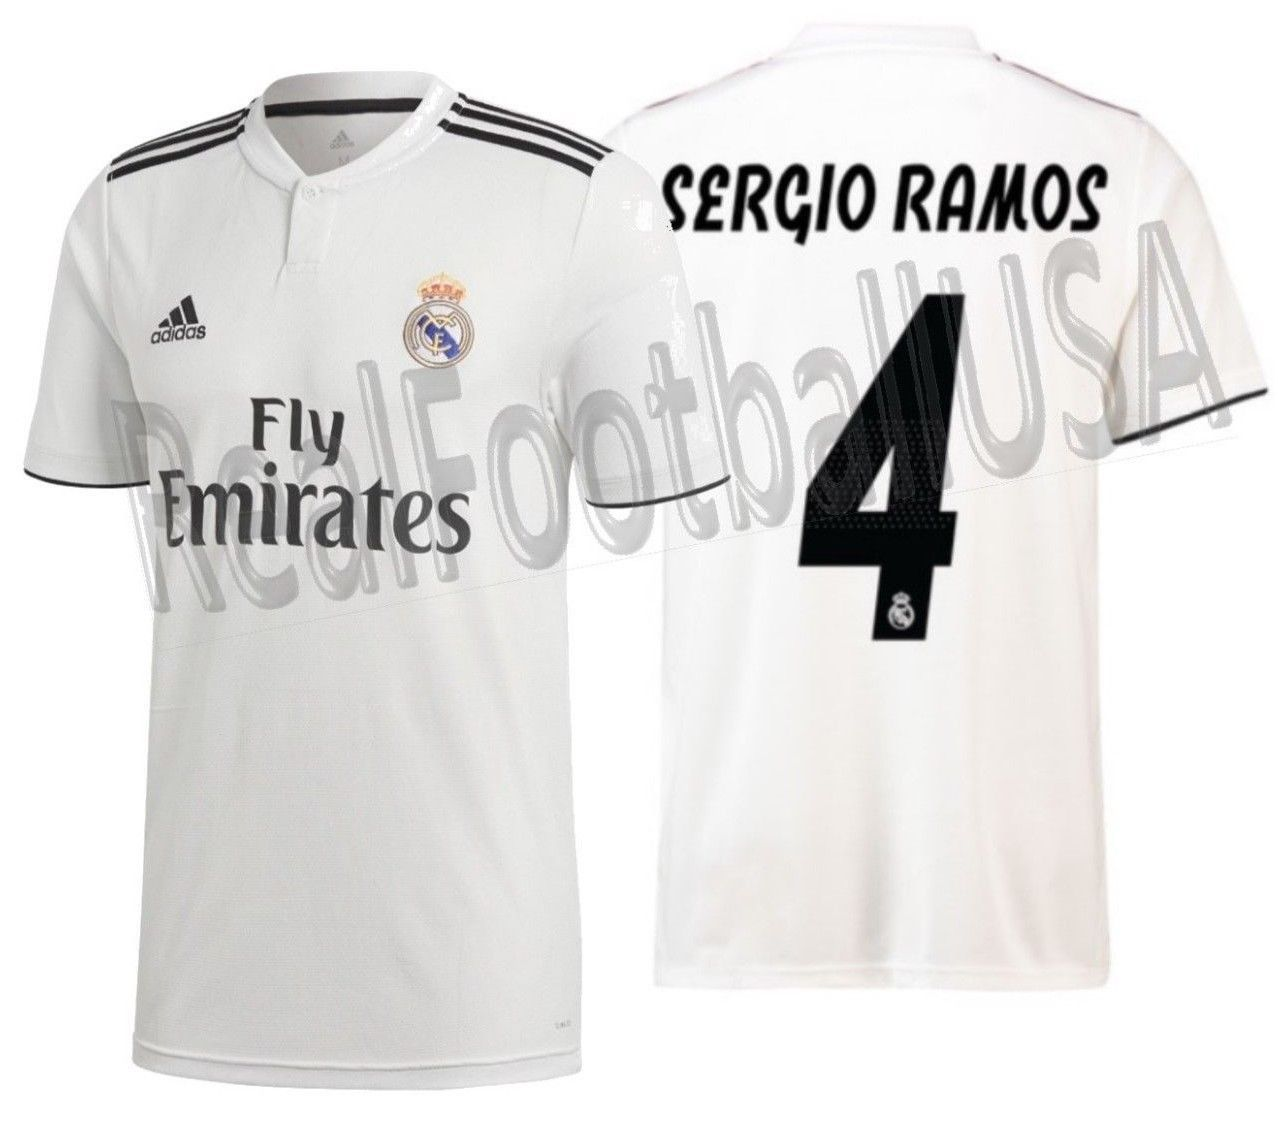 b7bbdfb89 Adidas Sergio Ramos Real Madrid Home Jersey and 50 similar items. 57